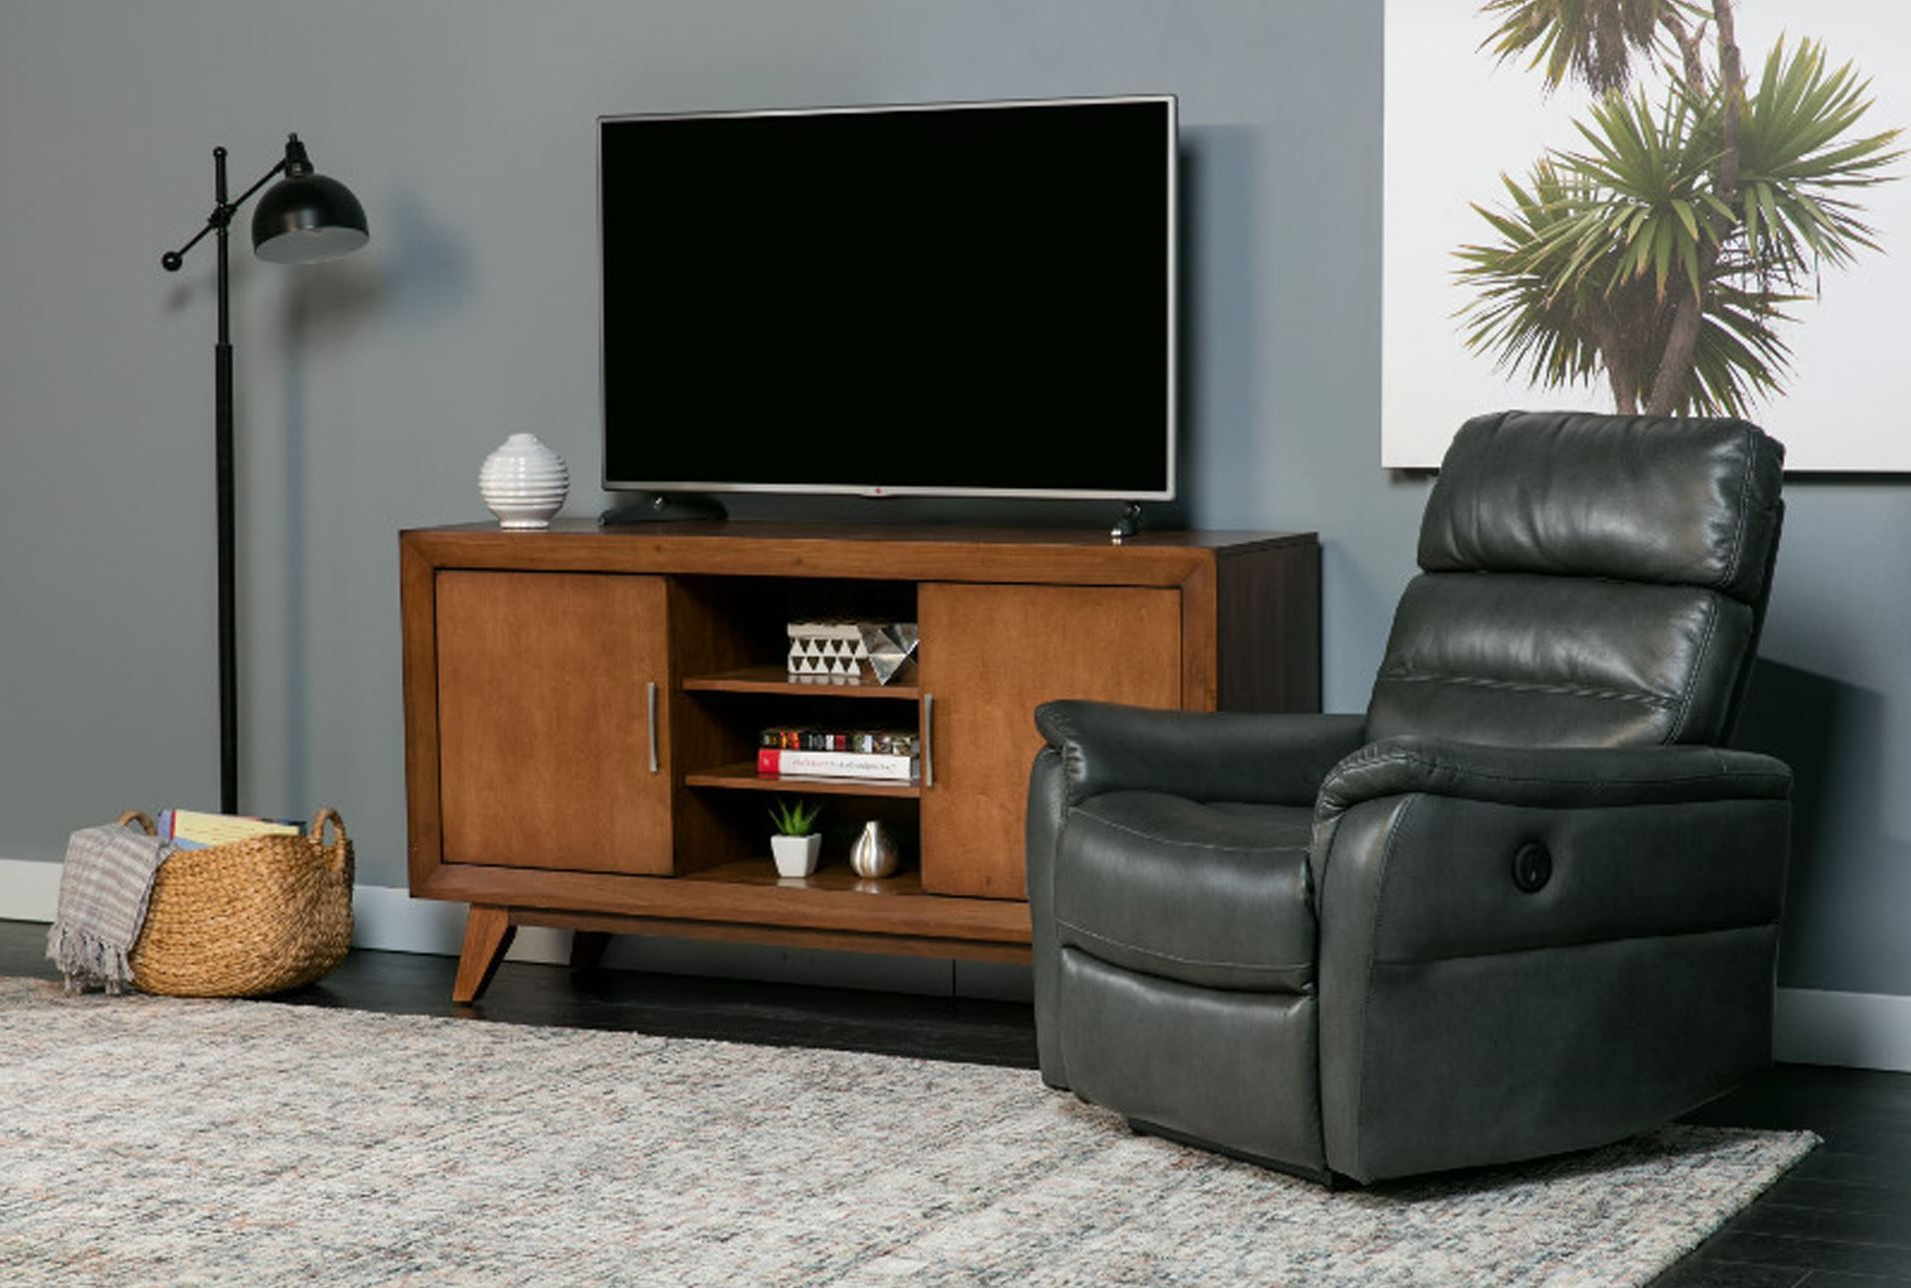 Abbott Chestnut 60 Inch Tv Stand | New Apartment | Pinterest | 60 Inside Abbot 60 Inch Tv Stands (View 1 of 20)